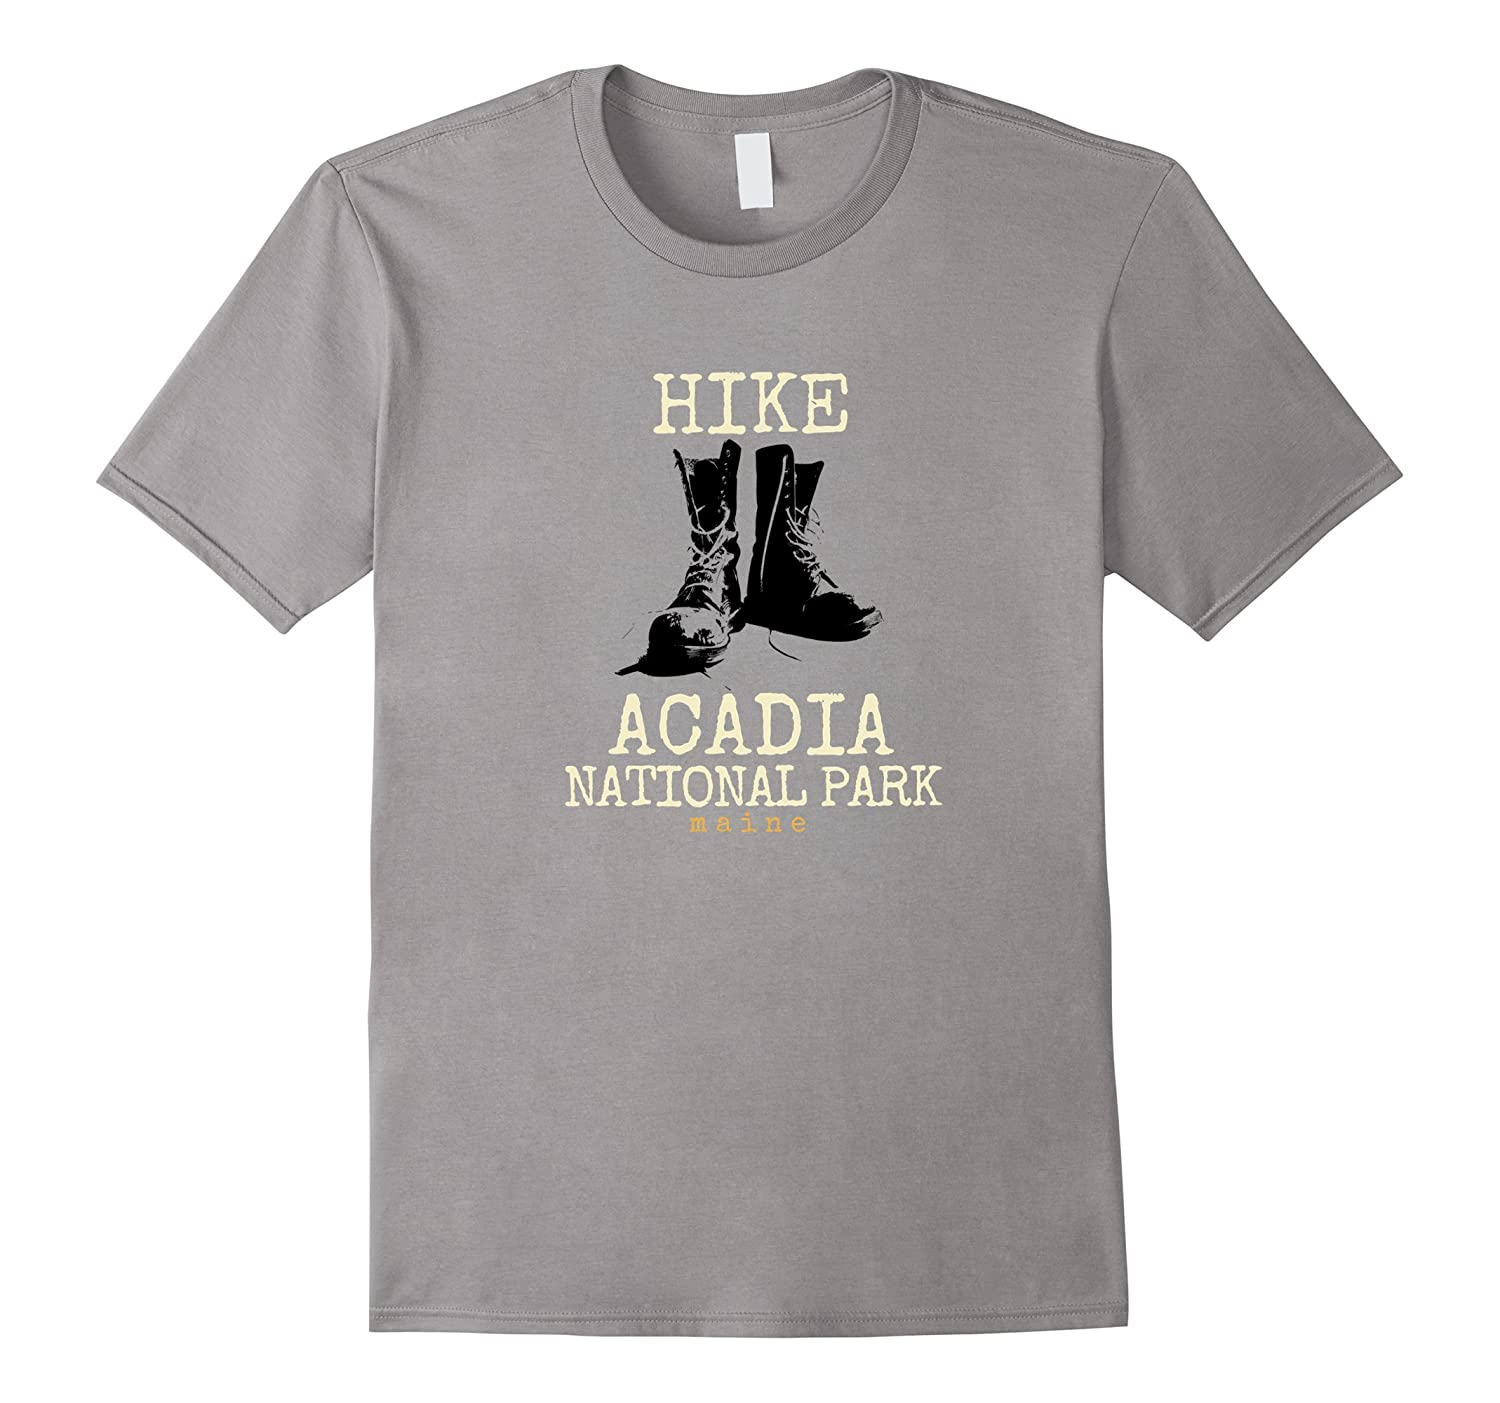 Acadia National Park Hike T-Shirt, Acadia Park Maine Shirt-TH